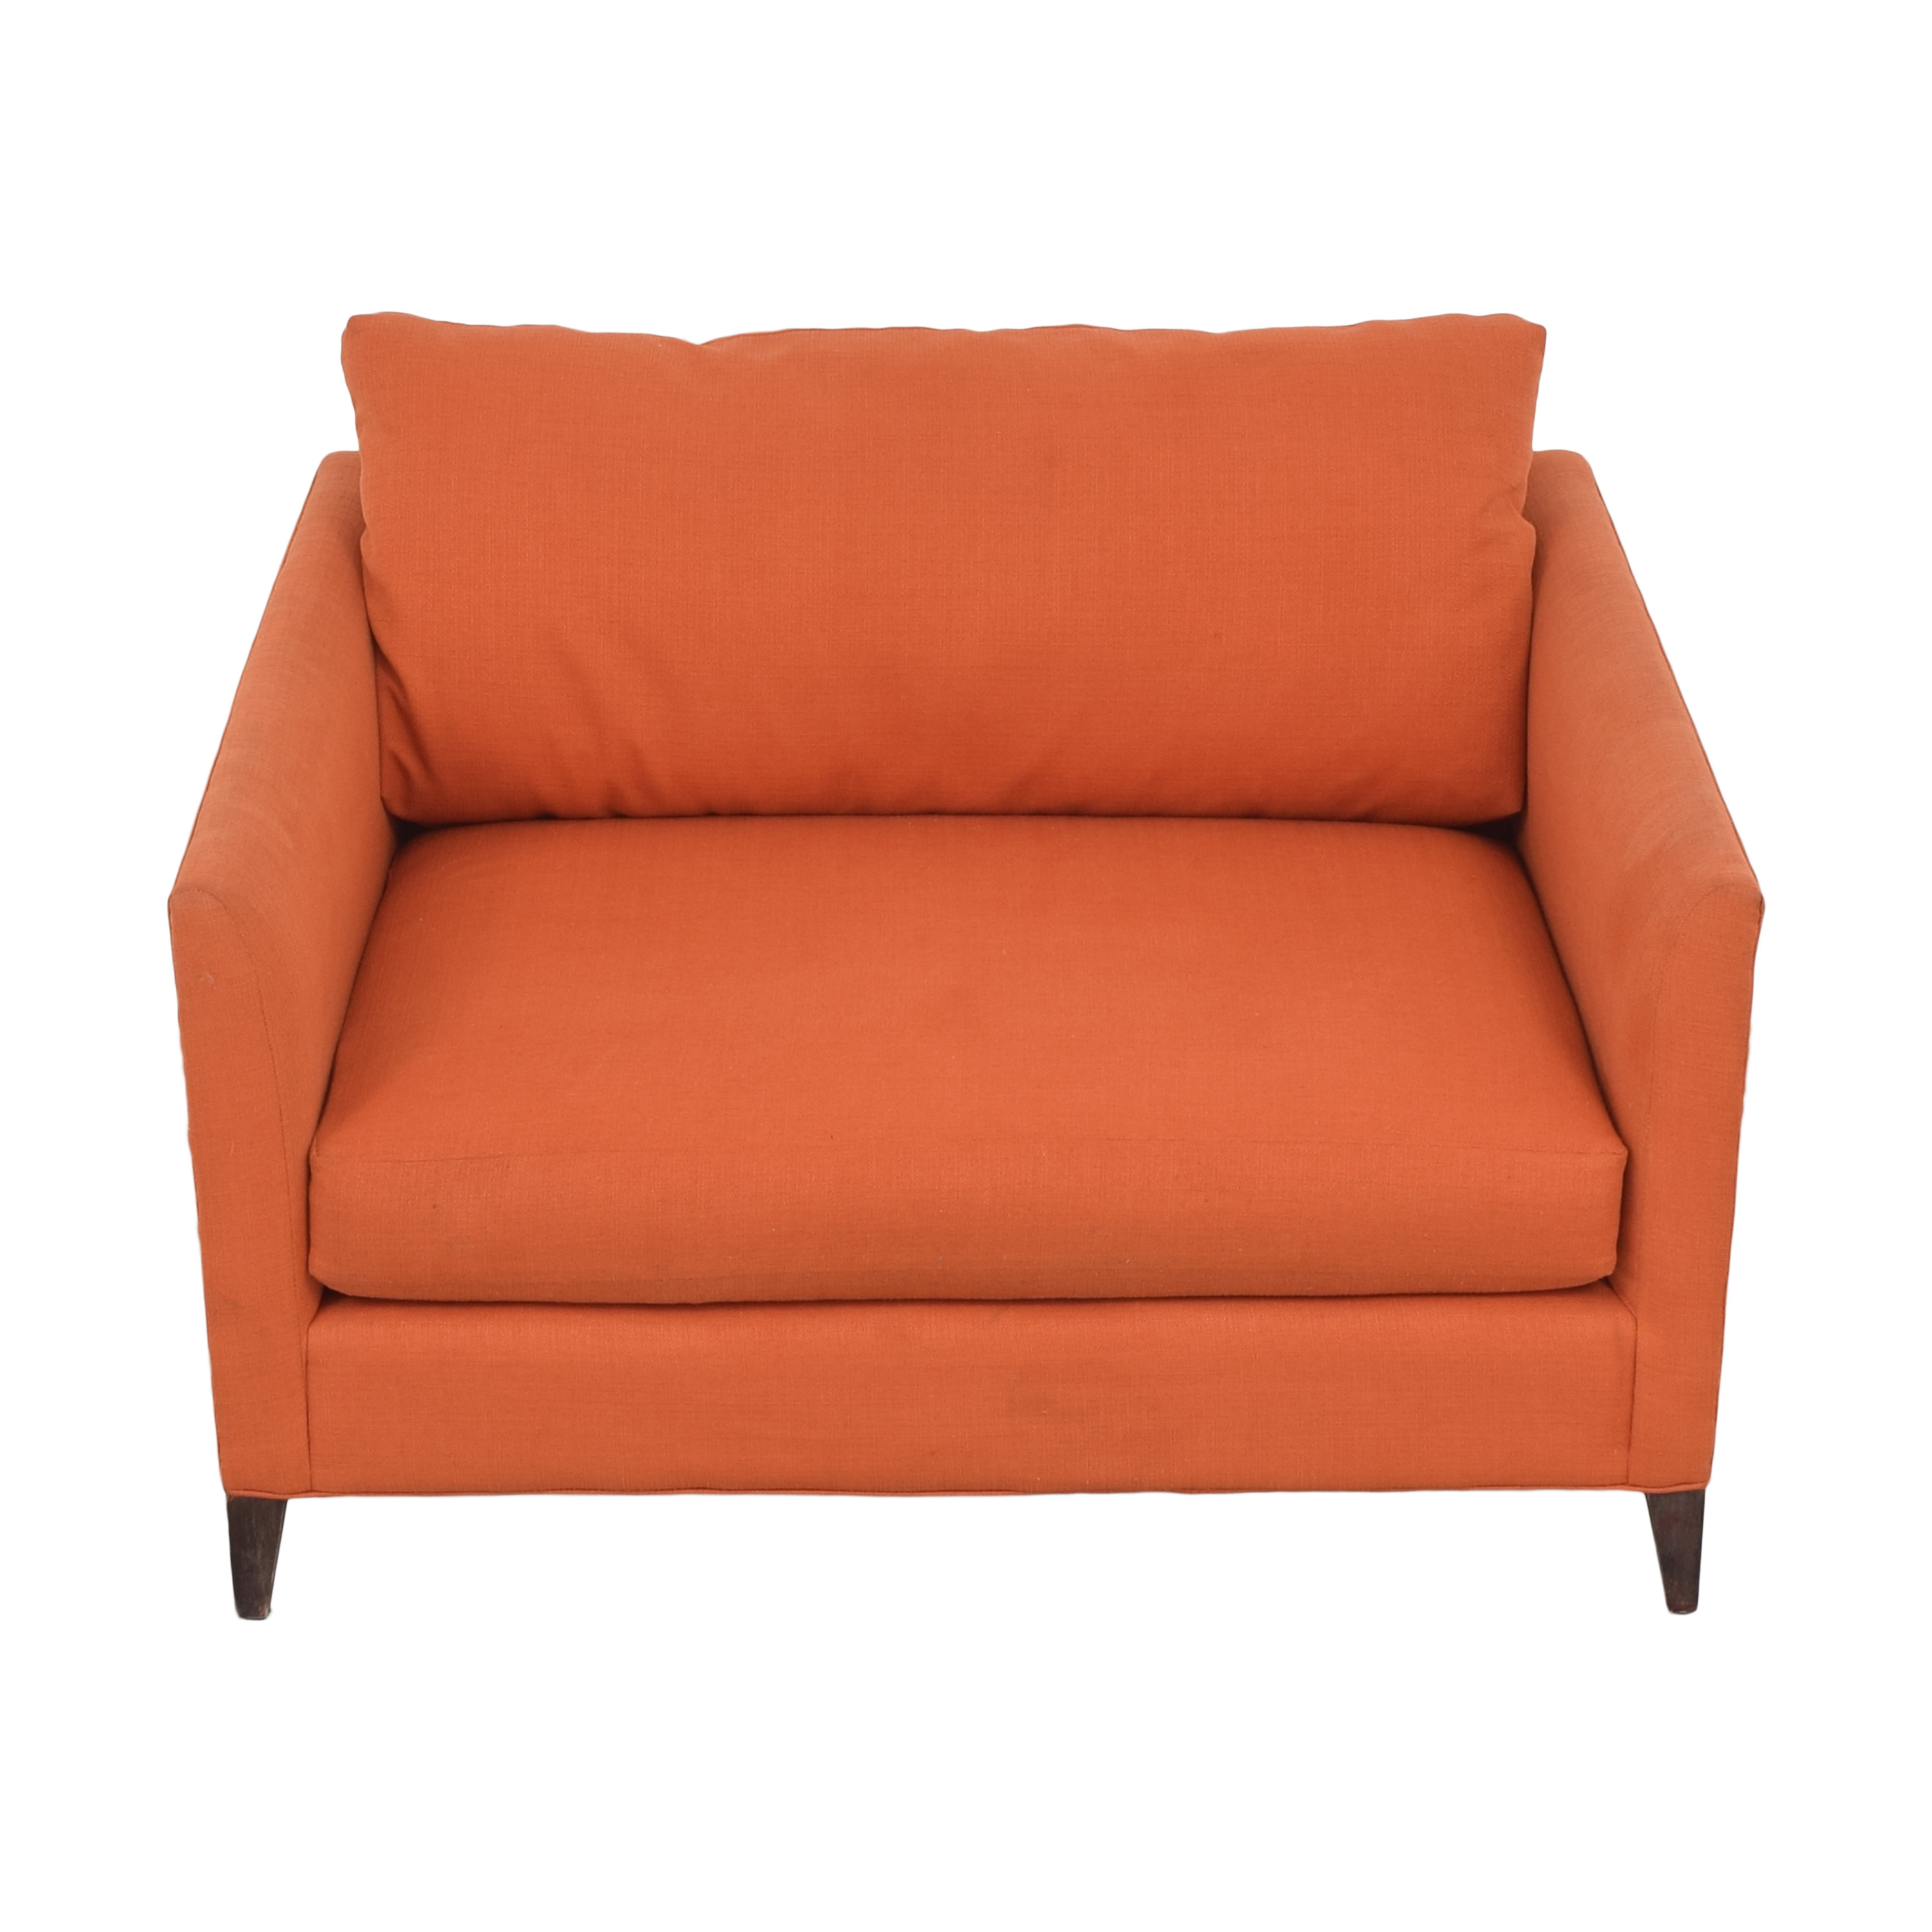 buy Crate & Barrel Chair and a Half Crate & Barrel Accent Chairs